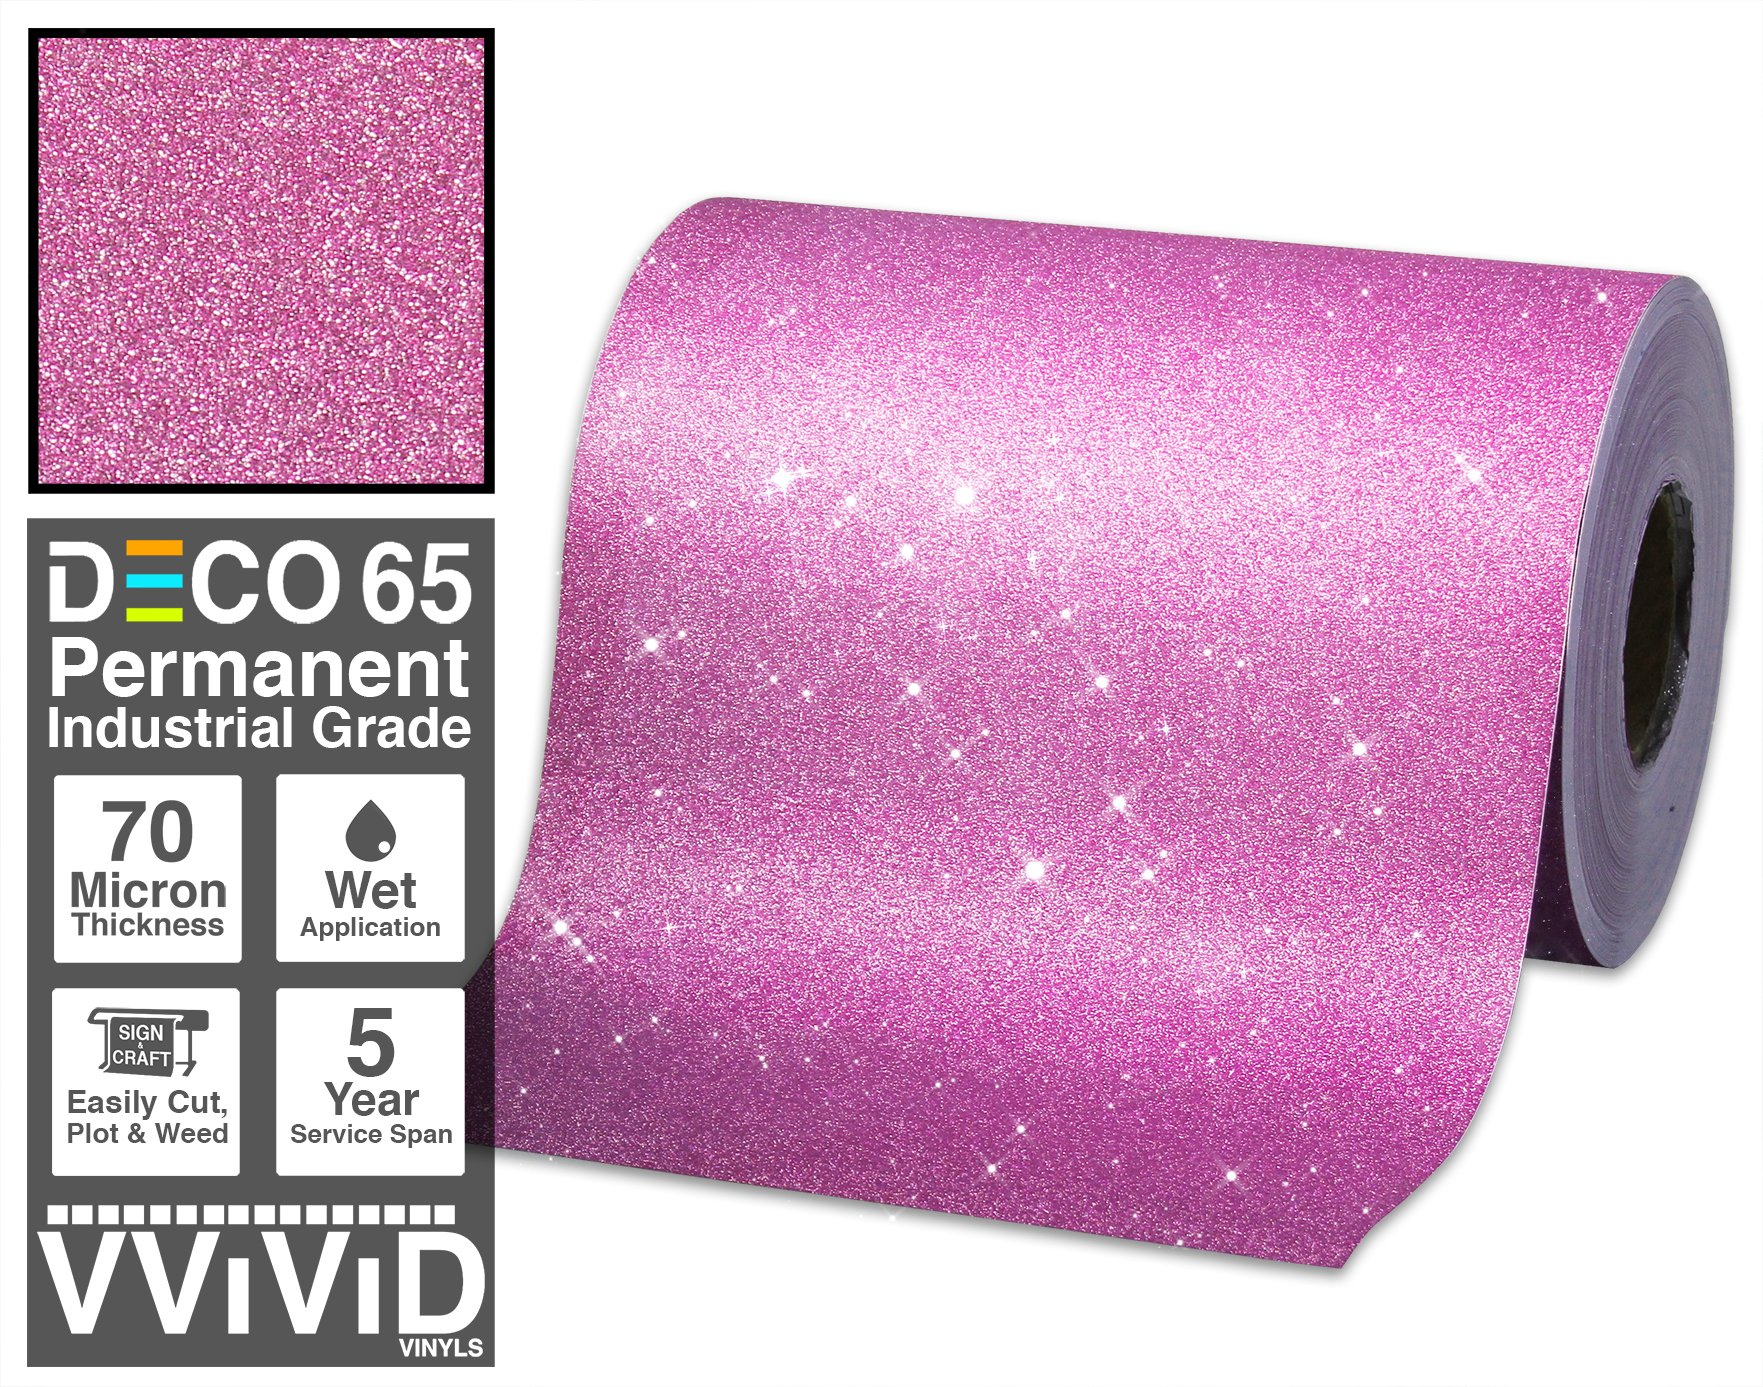 VViViD Glitter Pink DECO65 Permanent Adhesive Craft Vinyl Roll for Cricut, Silhouette & Cameo (100ft x 1ft)